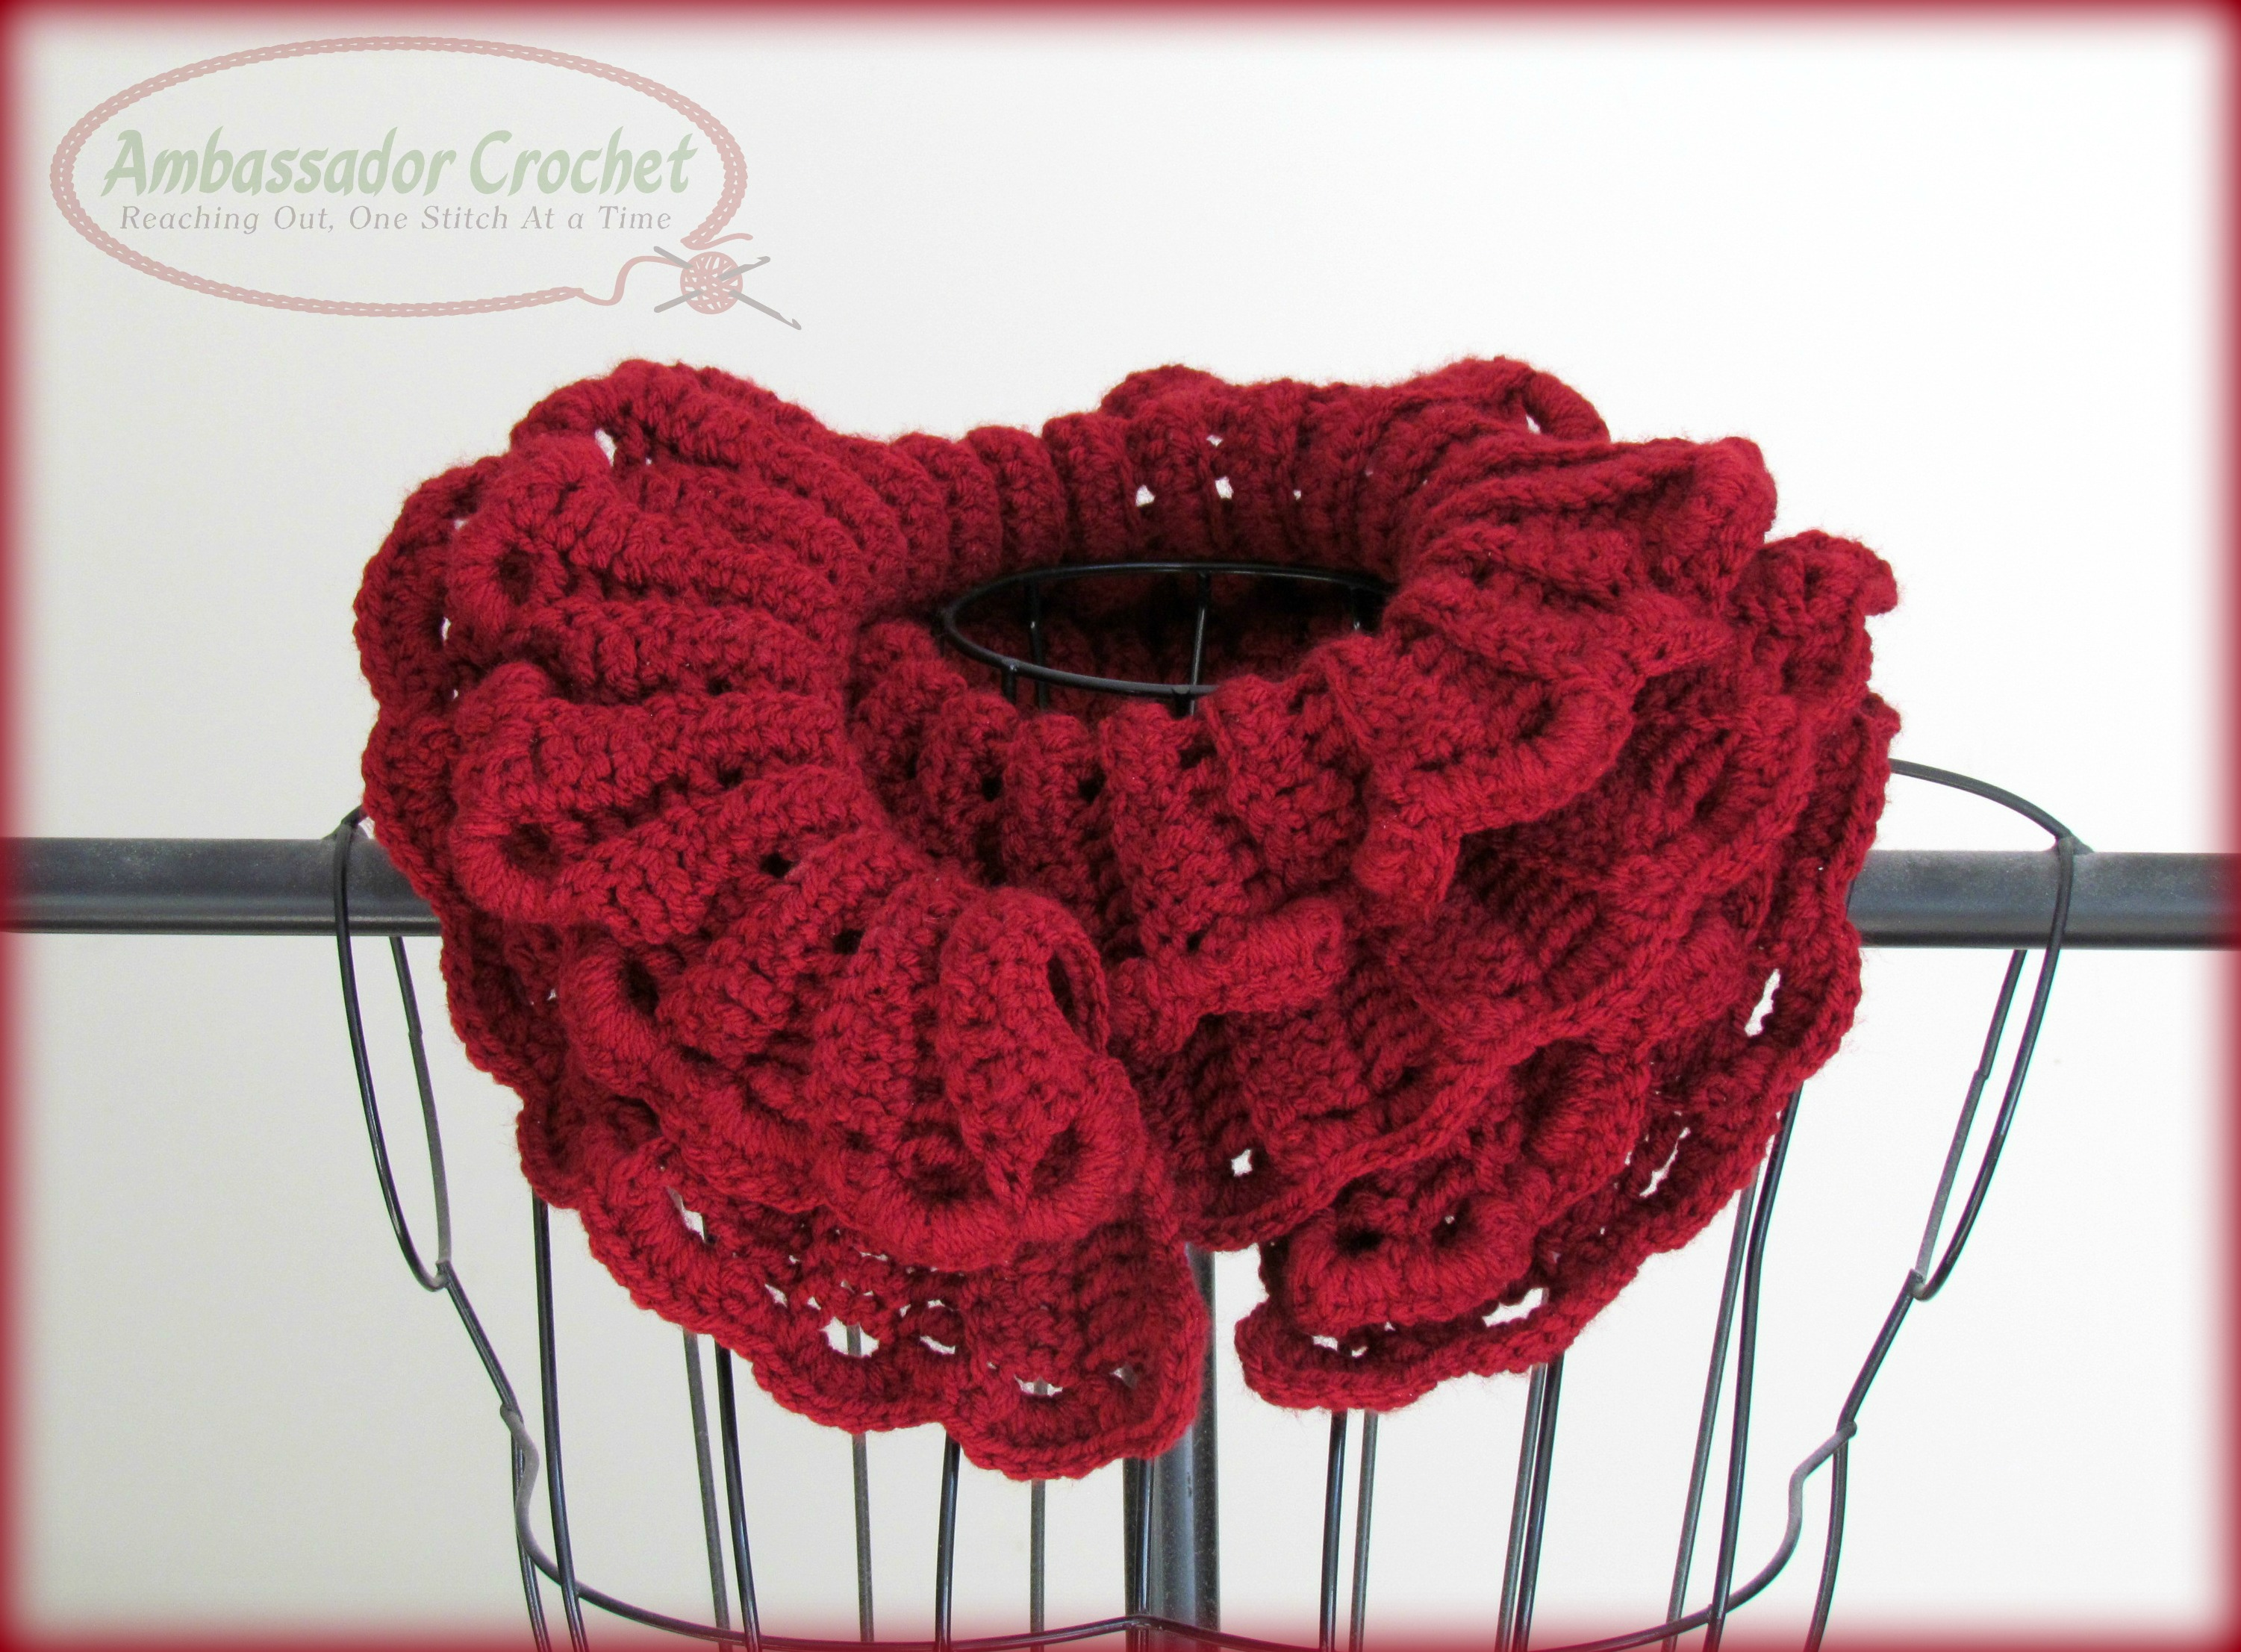 Crochet Designer Series featuring Shelby Allaho